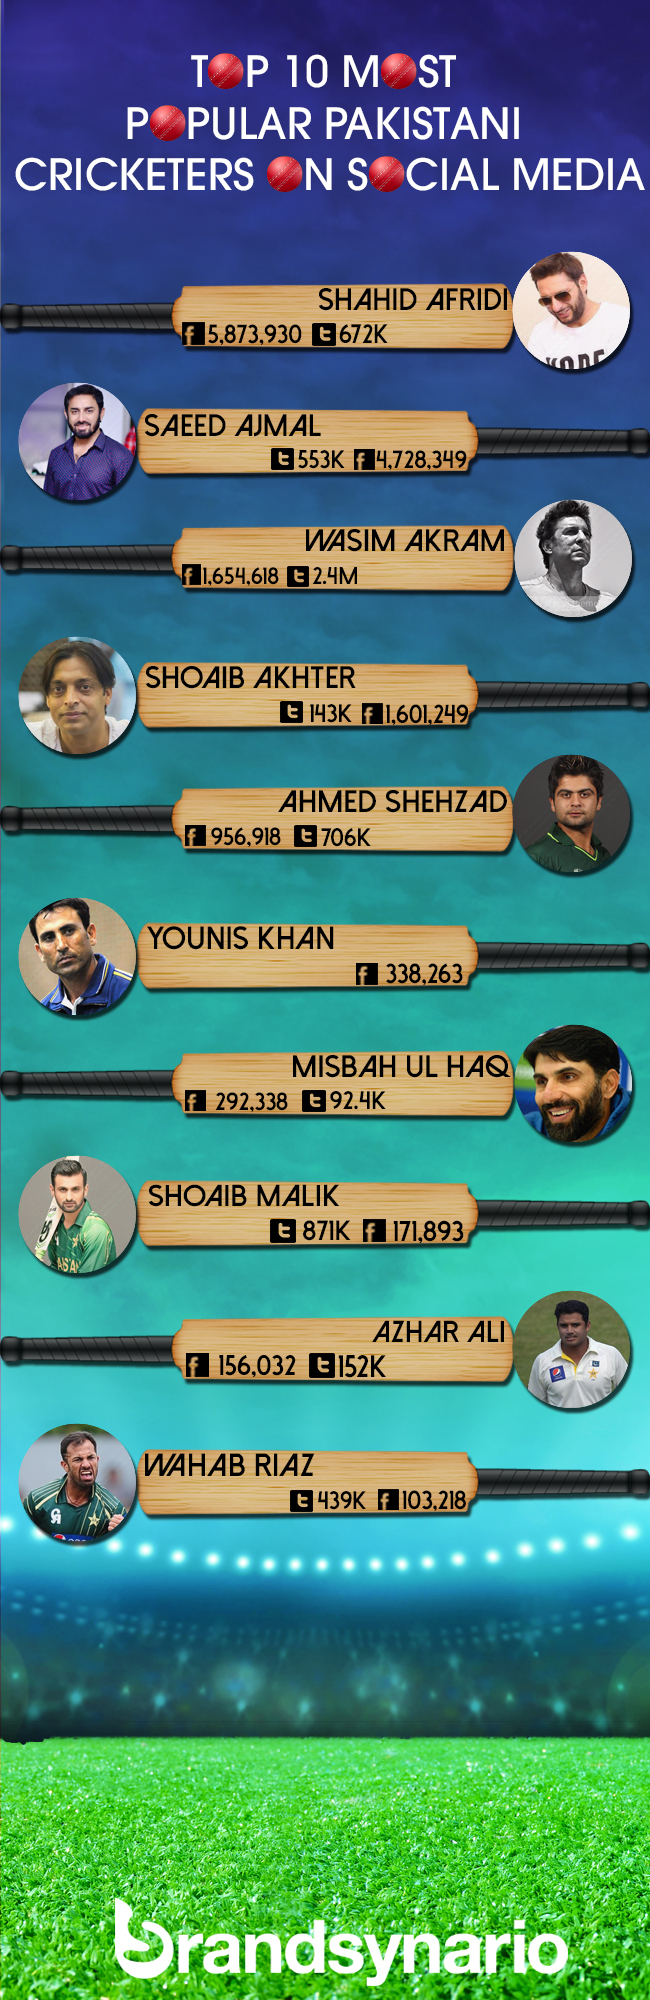 top-10-cricketers-on-social-media